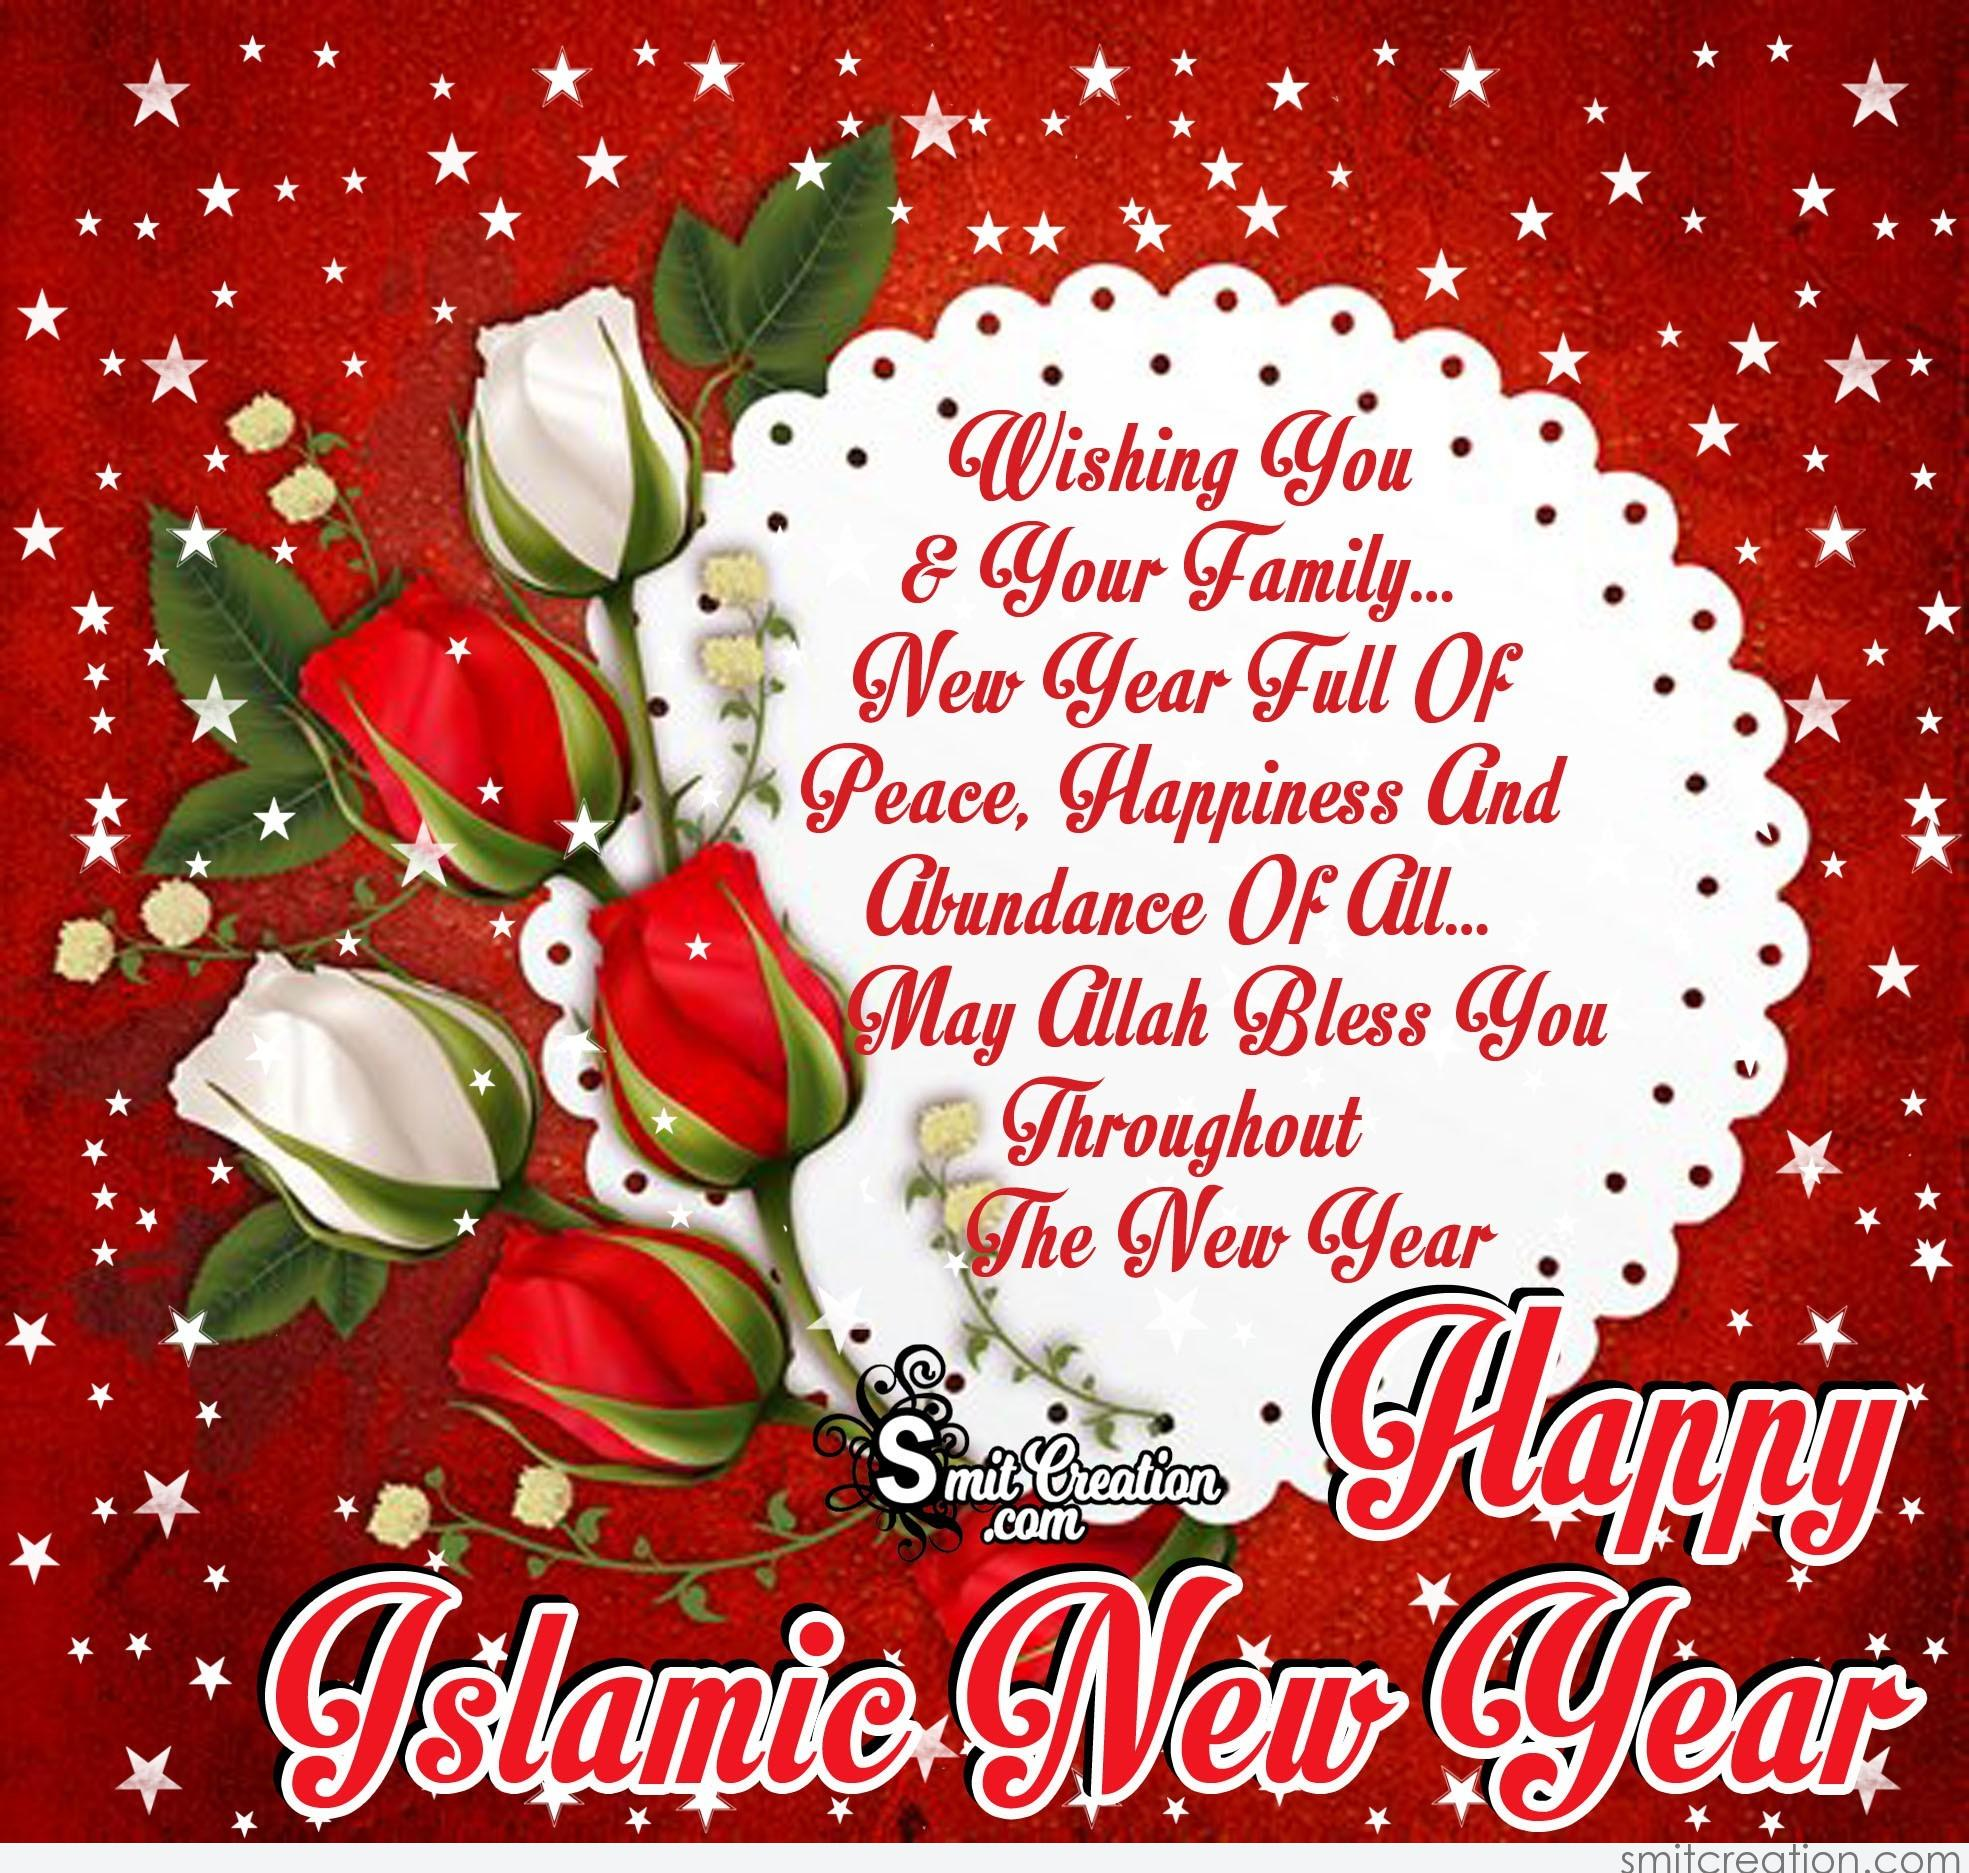 May allah bless you happy islamic new year smitcreation happy islamic new year m4hsunfo